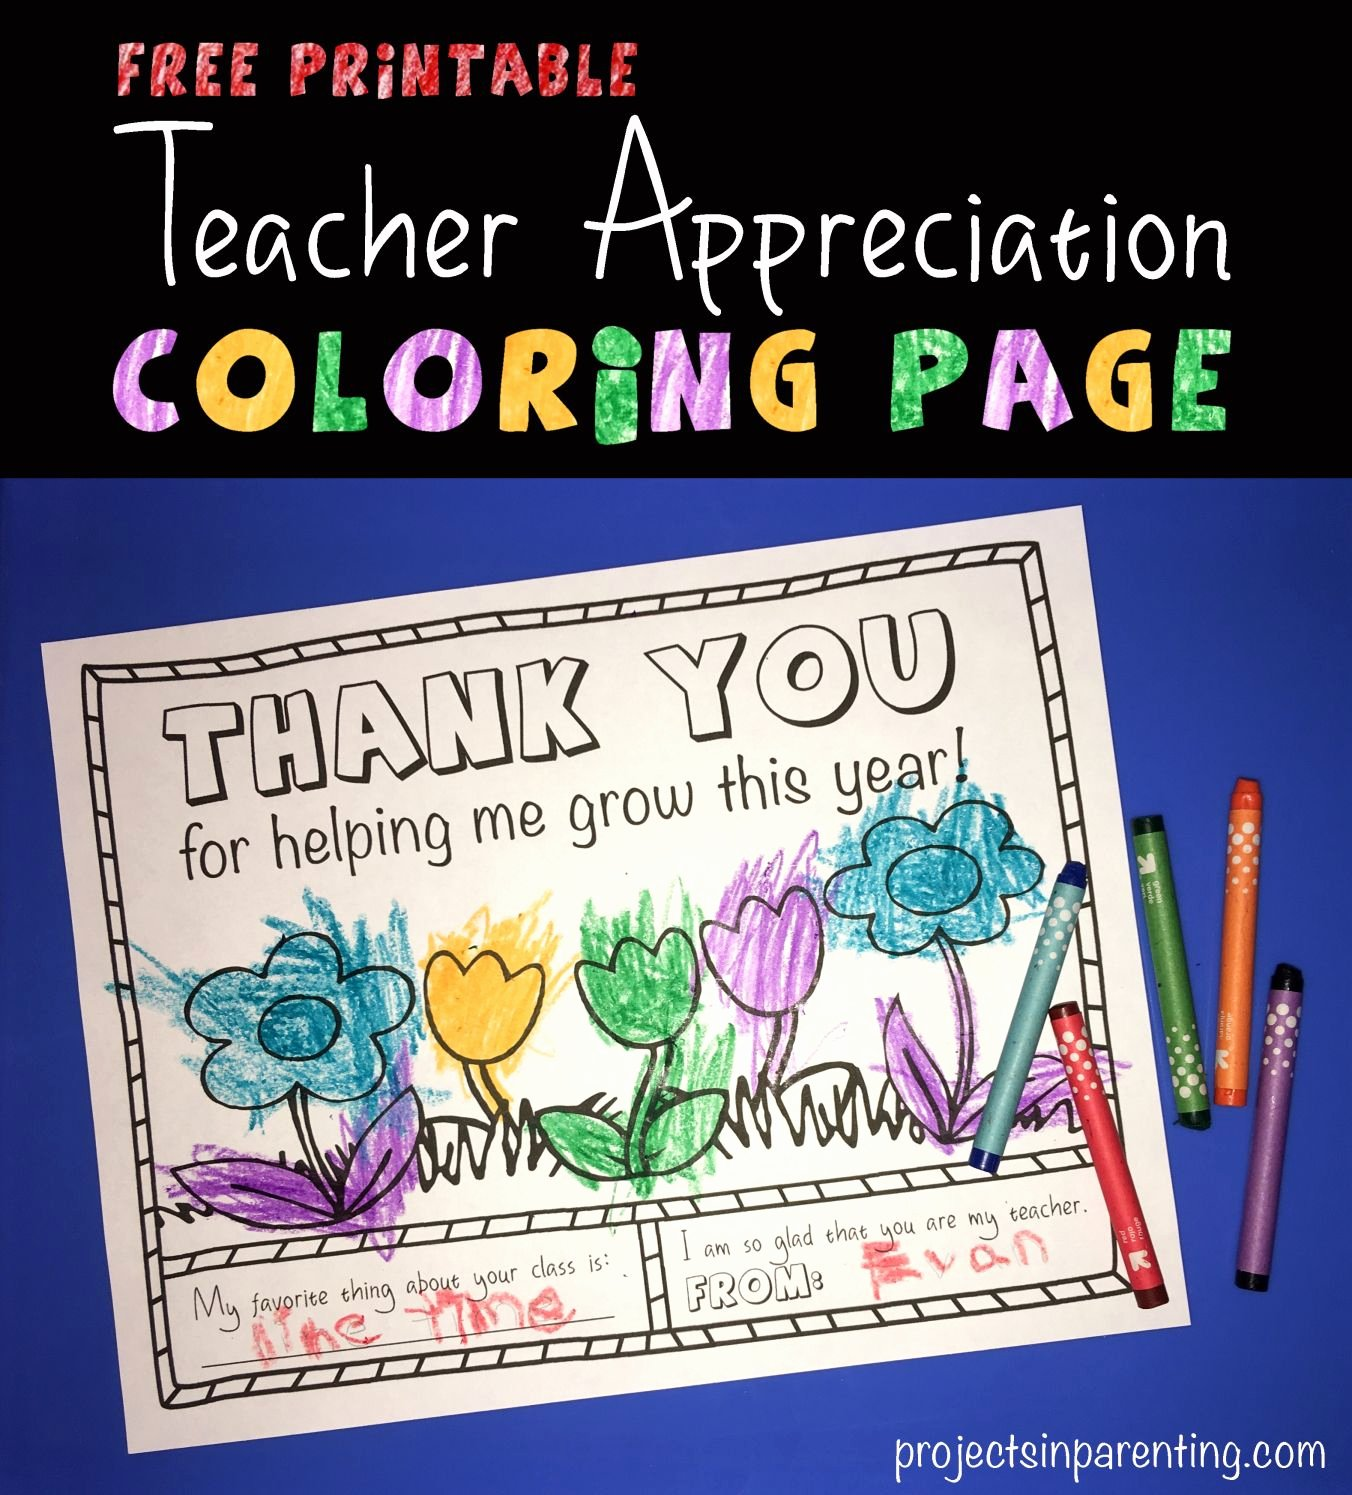 Thank You Preschool Teacher Unique Teacher Appreciation Coloring Page Thank You Gift Free Printable From Projectsinparenting